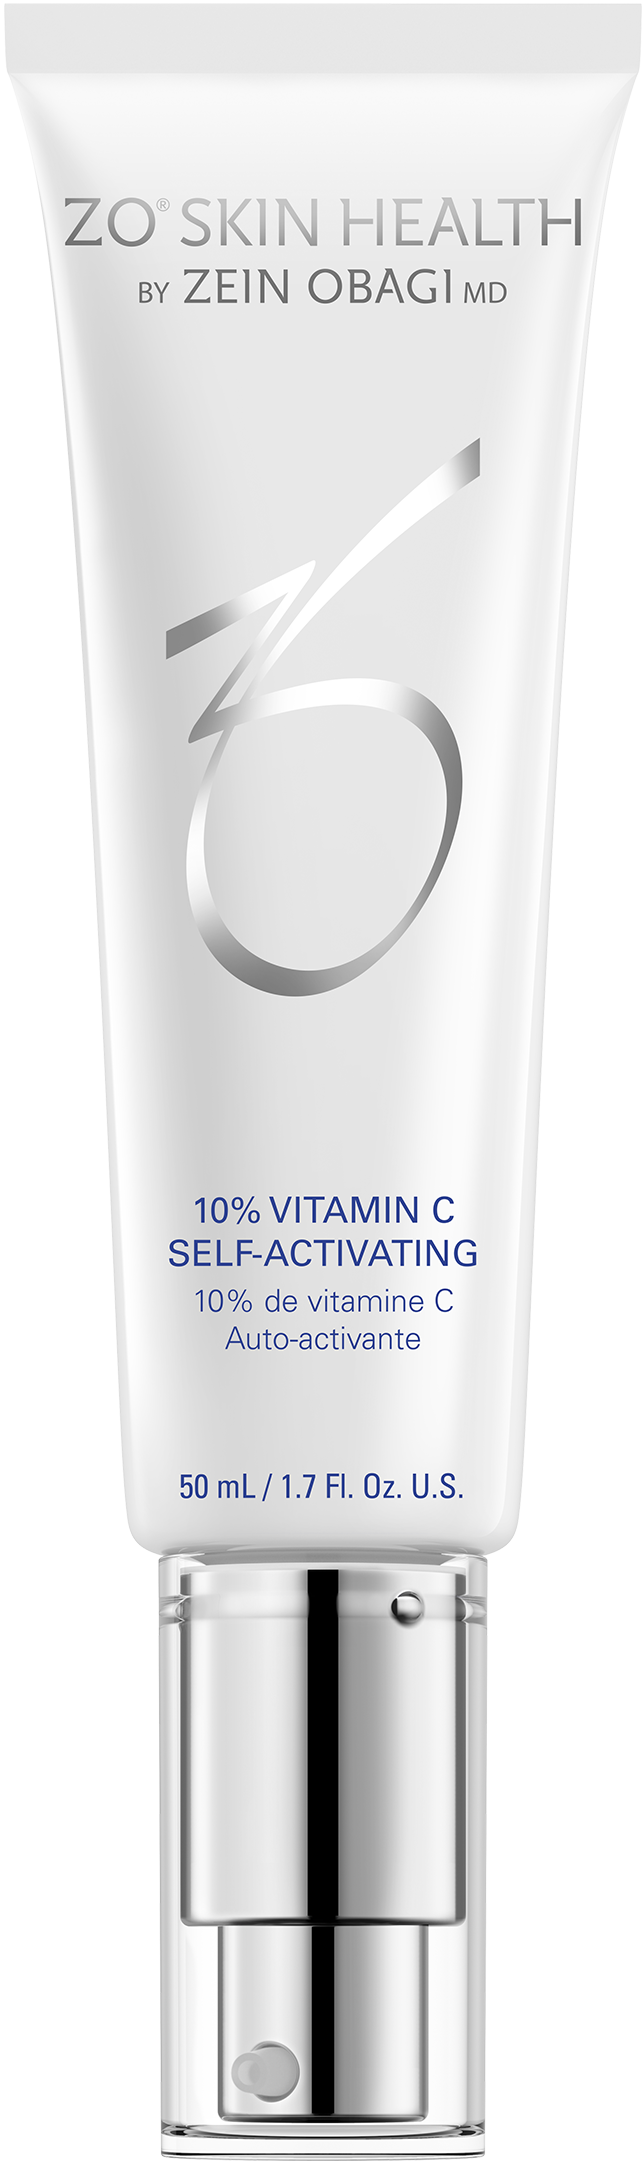 10% Vitamin C Self-Activating